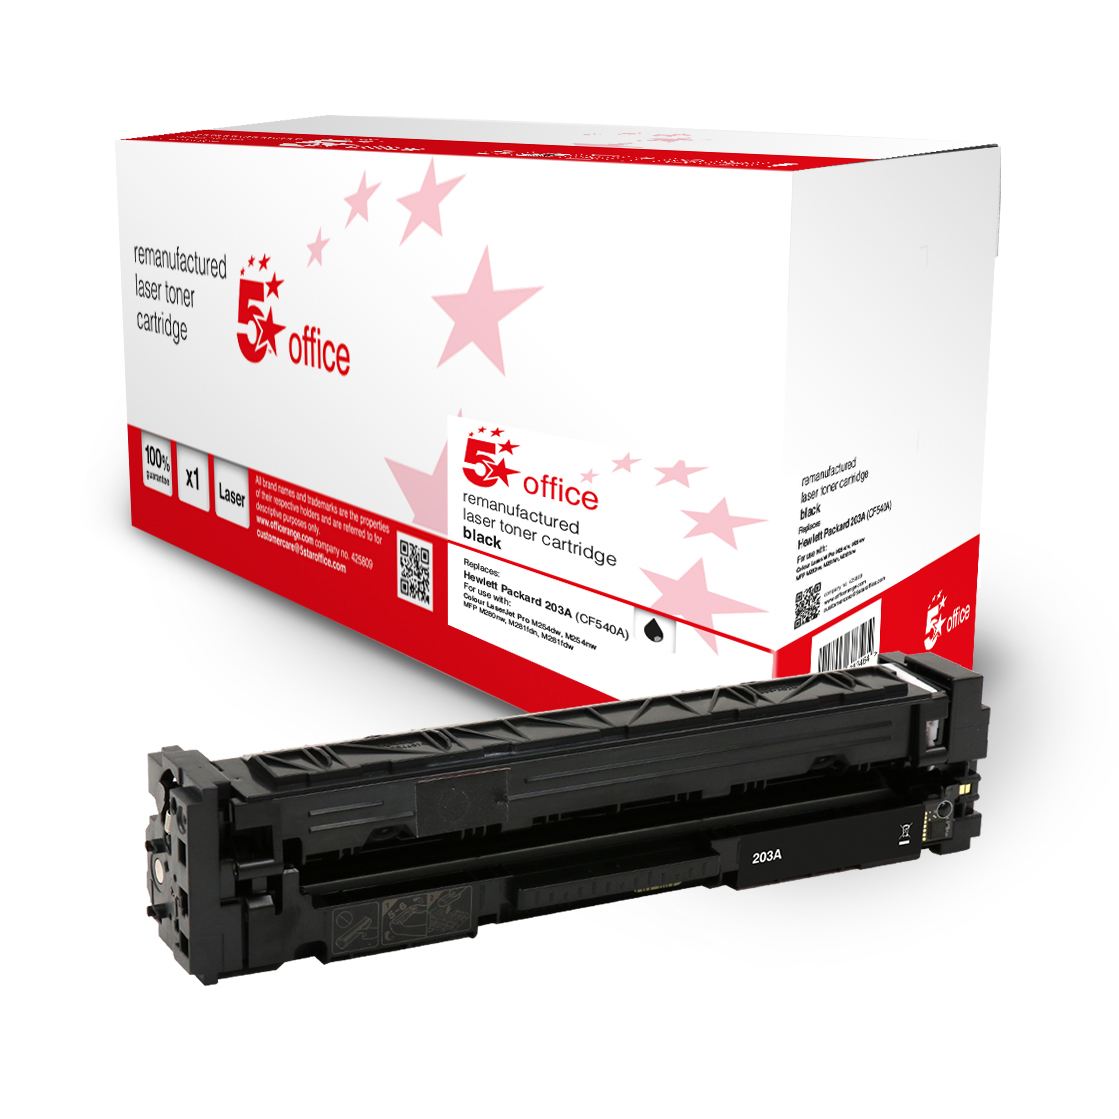 5 Star Office Remanufactured Toner Cartridge Page Life Black 1400pp HP 203A CF540A Alternative